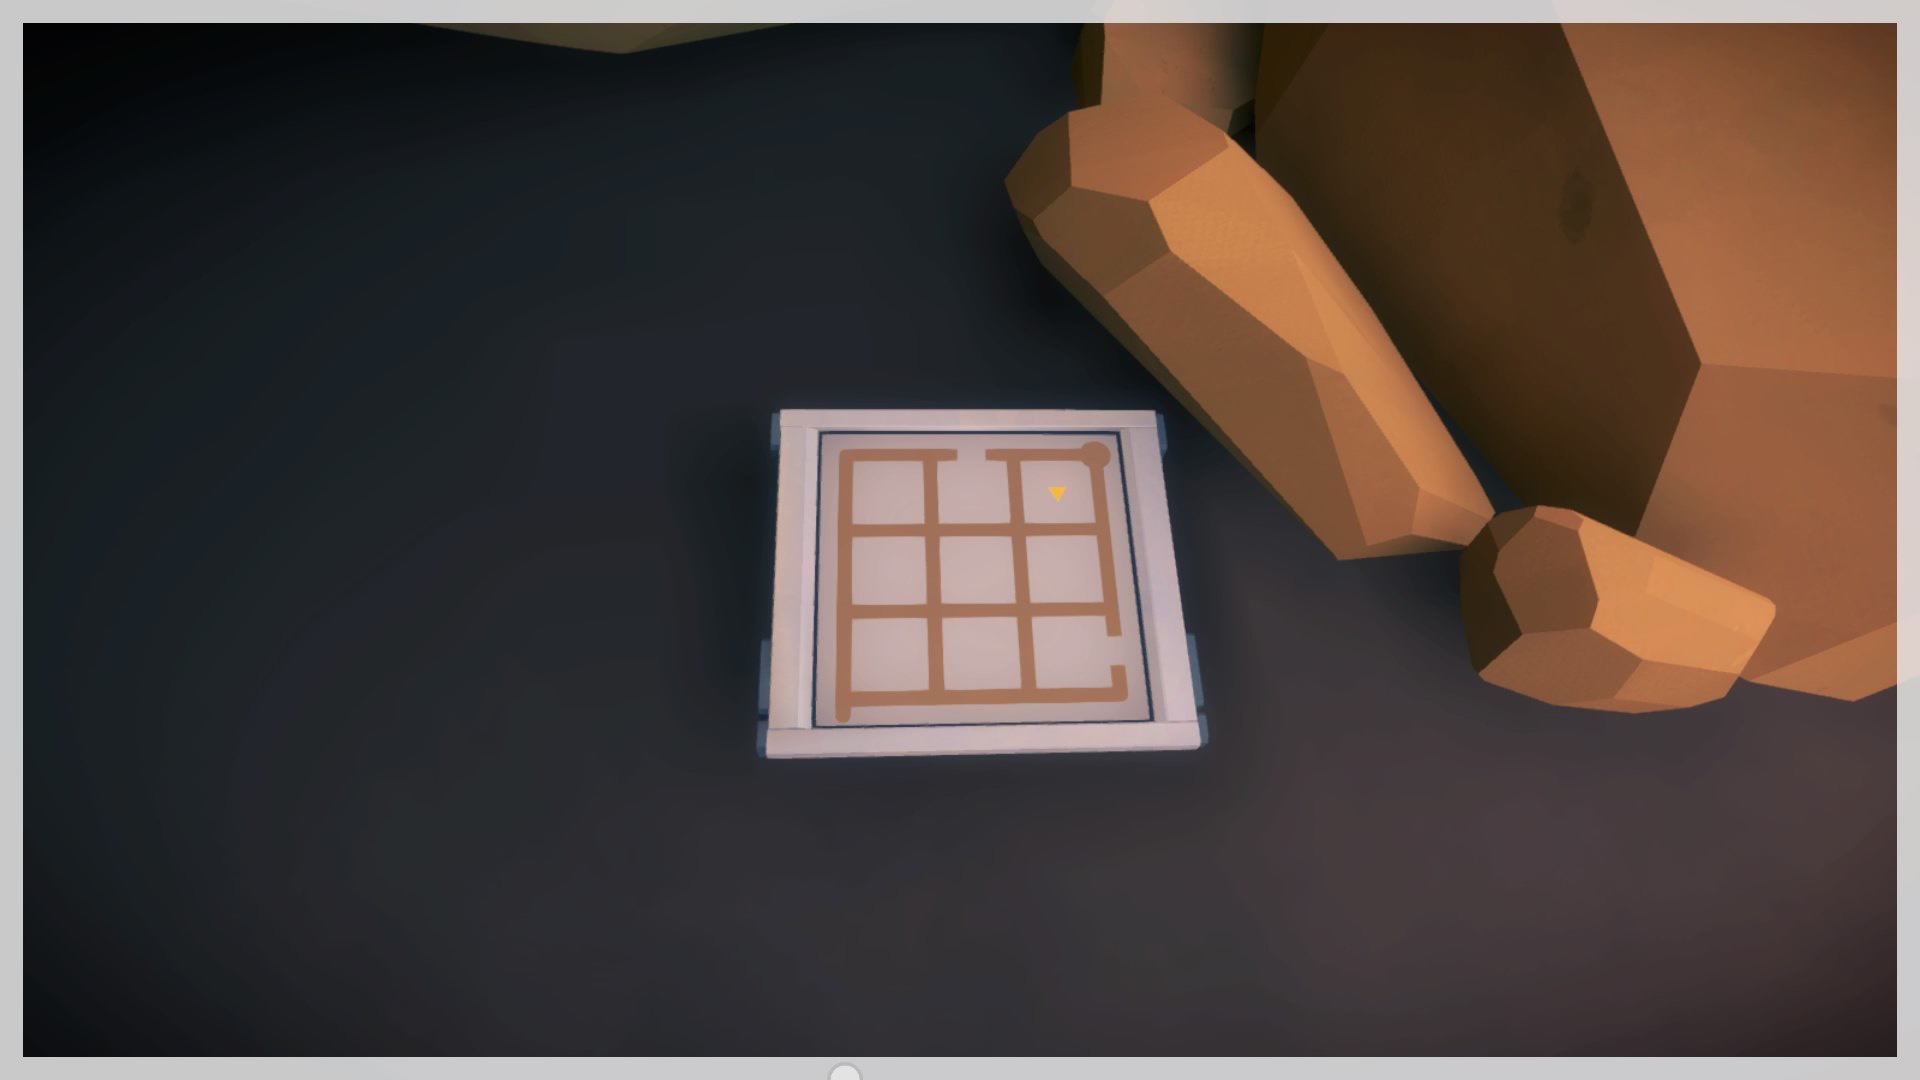 How to Solve All the Puzzles in The Witness - Guide - Push